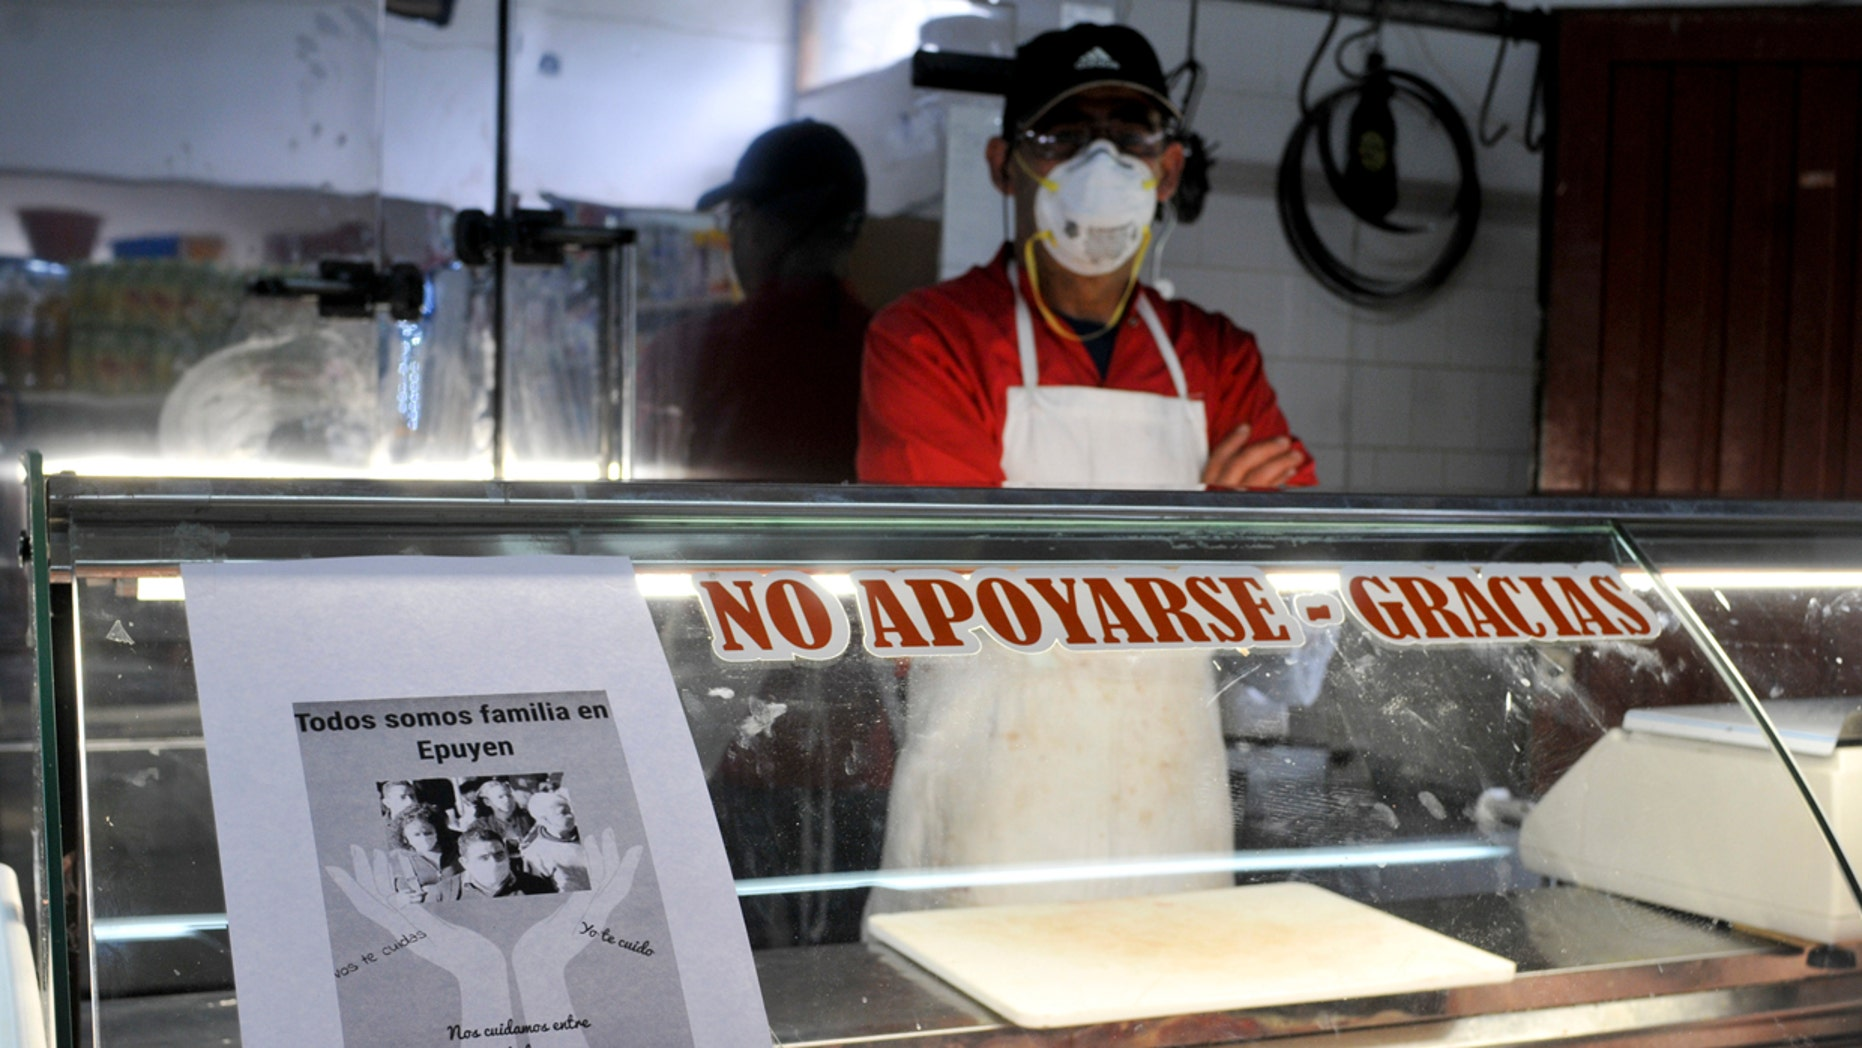 "A man wearing a mask waits for clients at his shop, with a sign posted that reads in Spanish ""We are all family in Epuyen, be supportive, use a mask"" in Epuyen, Argentina, Friday, Jan. 11, 2019. (AP Photo/Gustavo Zaninelli)"